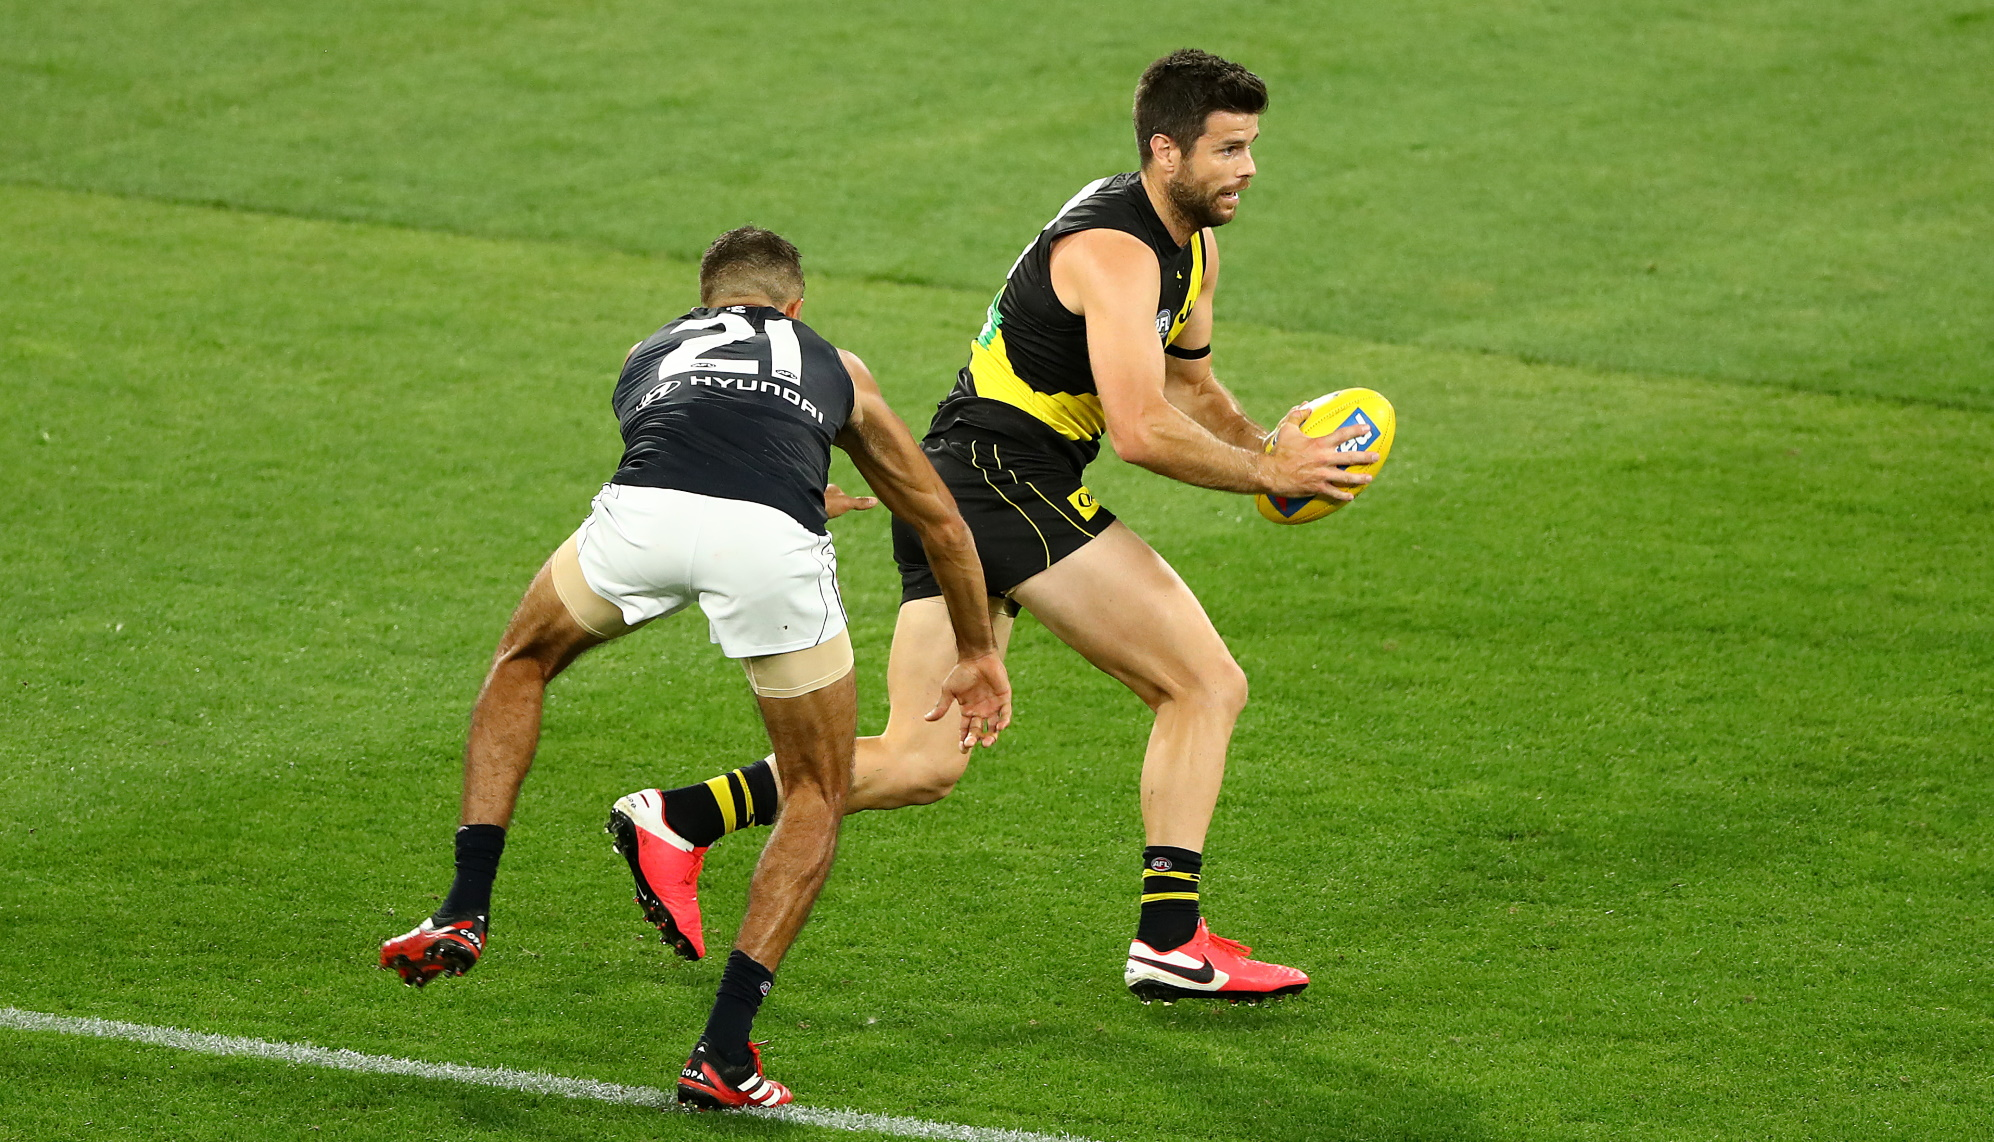 AFL live stream 2020: how to watch every match online from anywhere